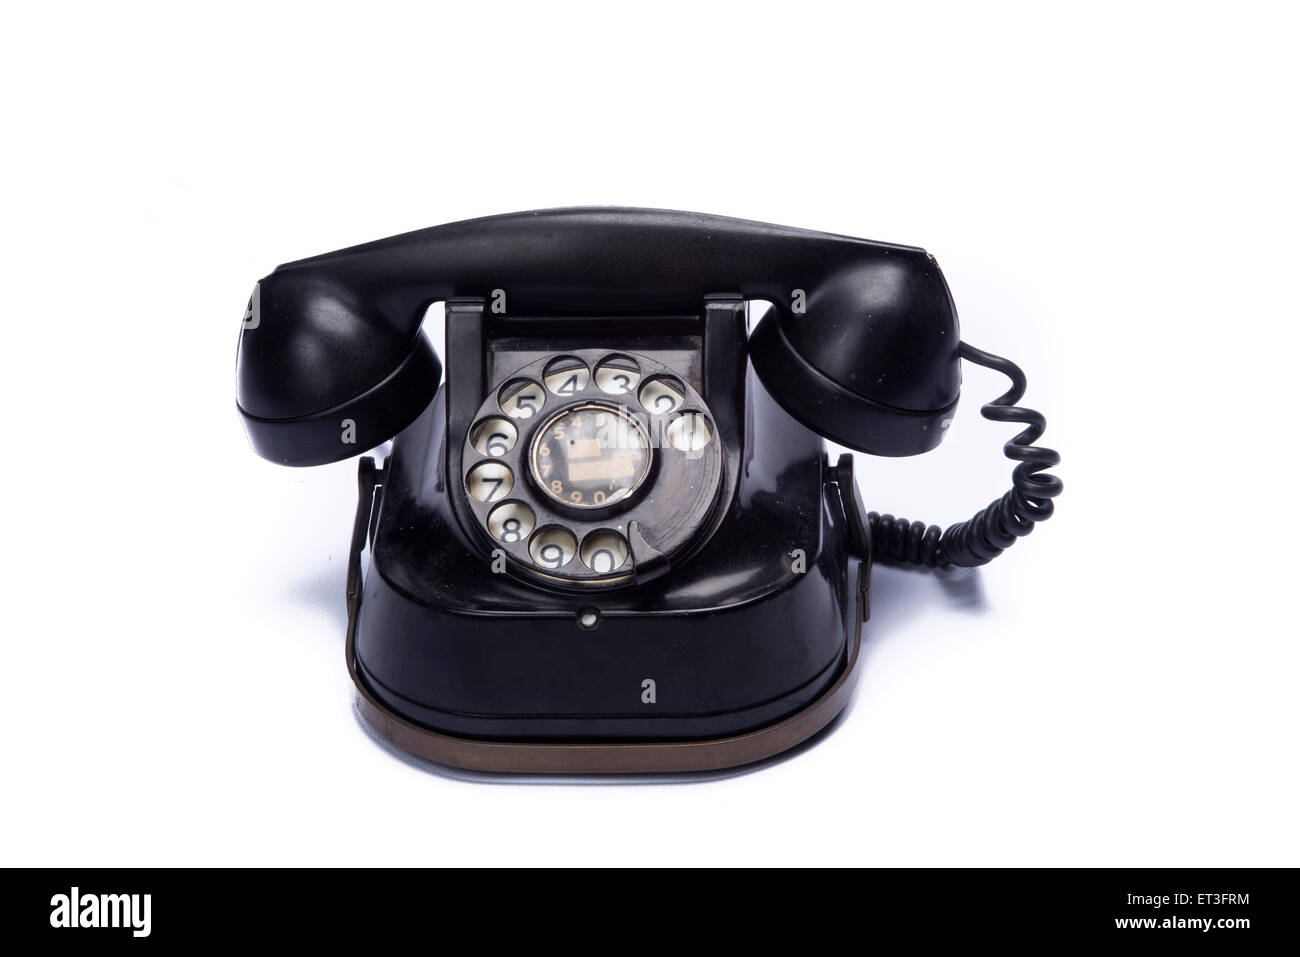 vintage telephone isolated on white background - Stock Image